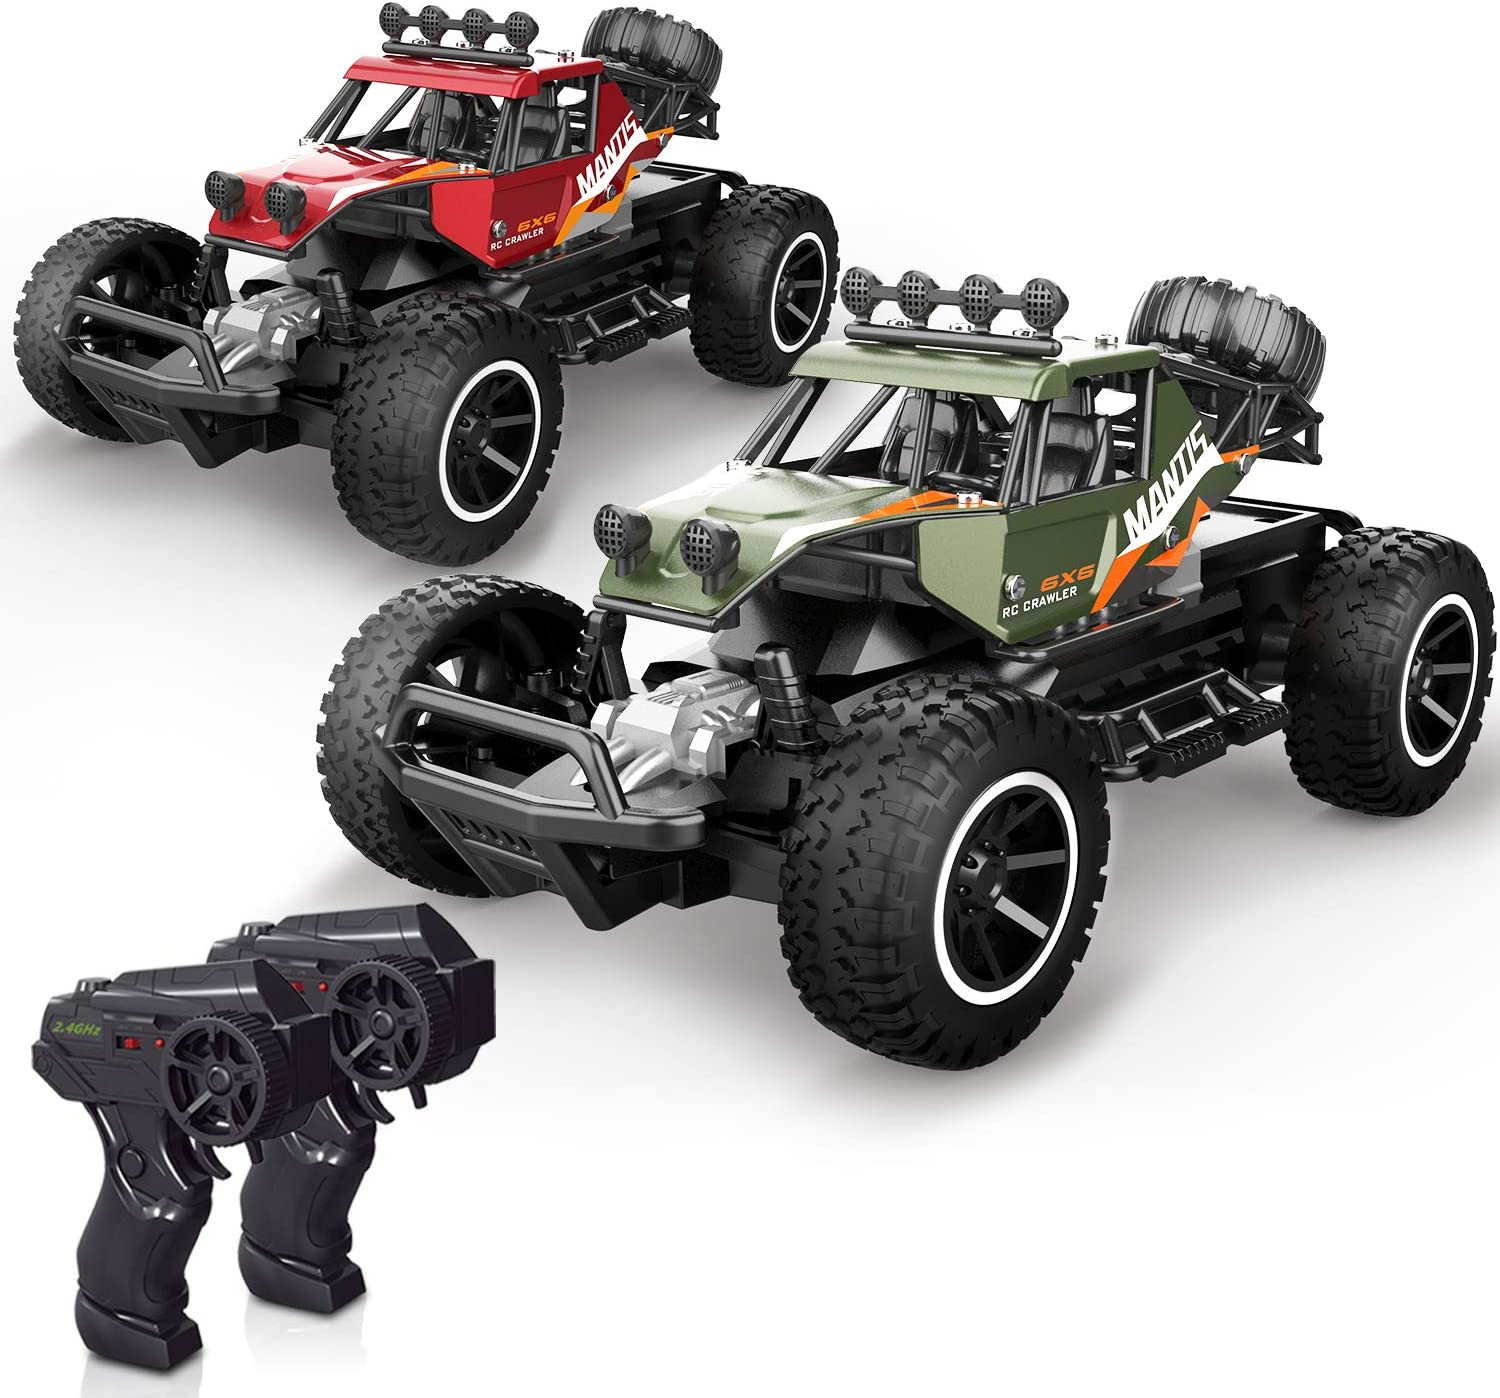 Amazon Com X Toyz Rc Cars Remote Control Cars 2 Pcs Off Road Monster Trucks For Kids 1 20 Scale Metal Shell Alloy Rc Car High Speed Racing Car 2 4ghz Hobby Vehicles Toys Gifts